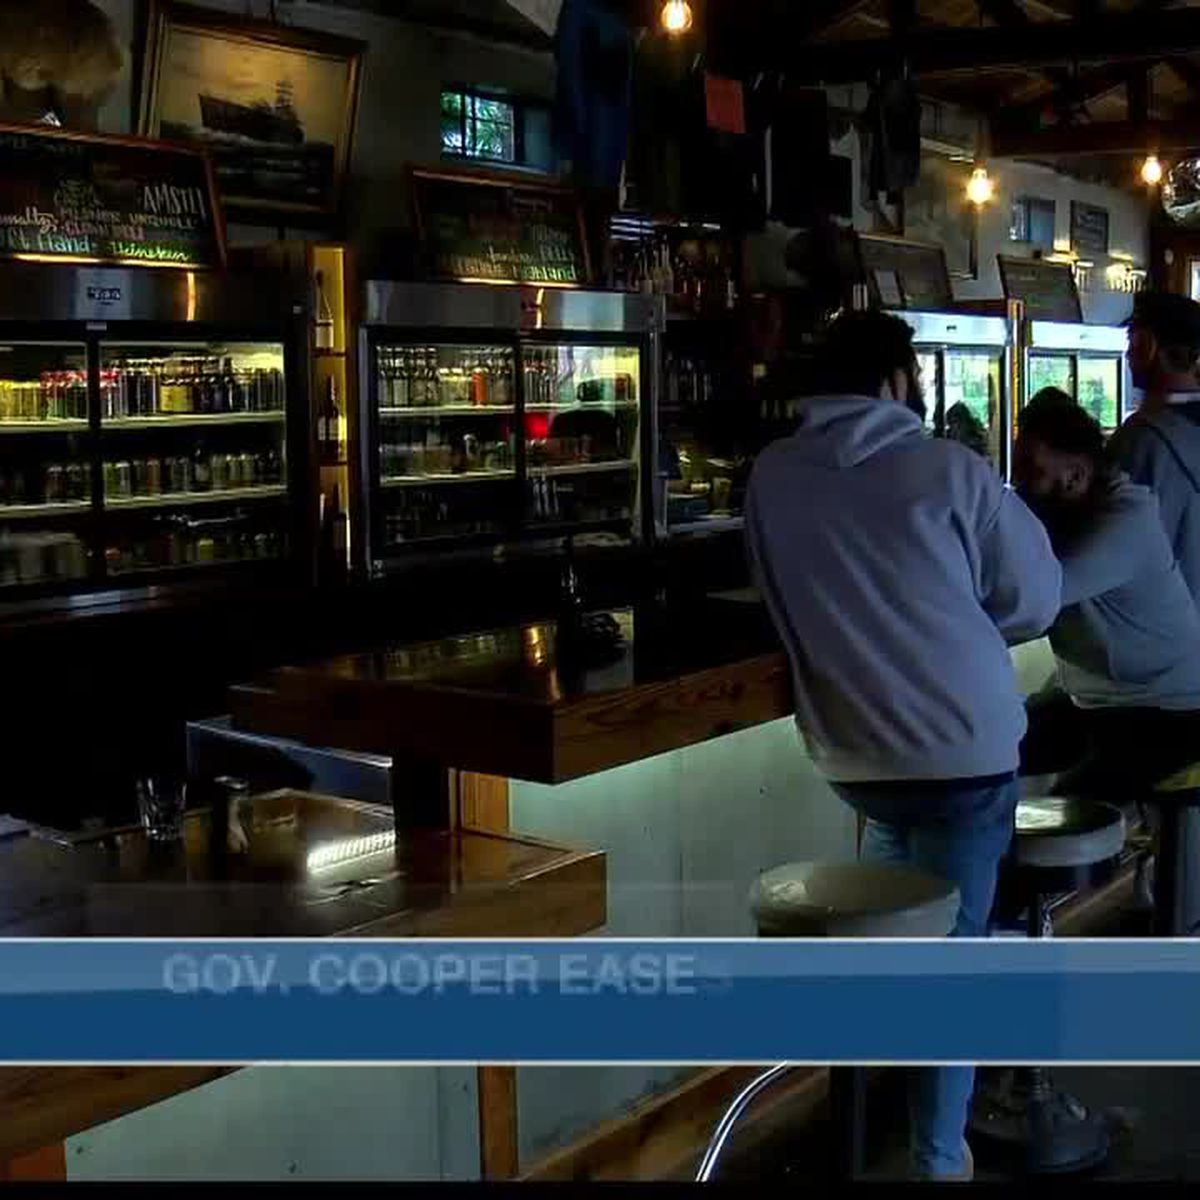 Local reaction to Governor Cooper easing restrictions on bars